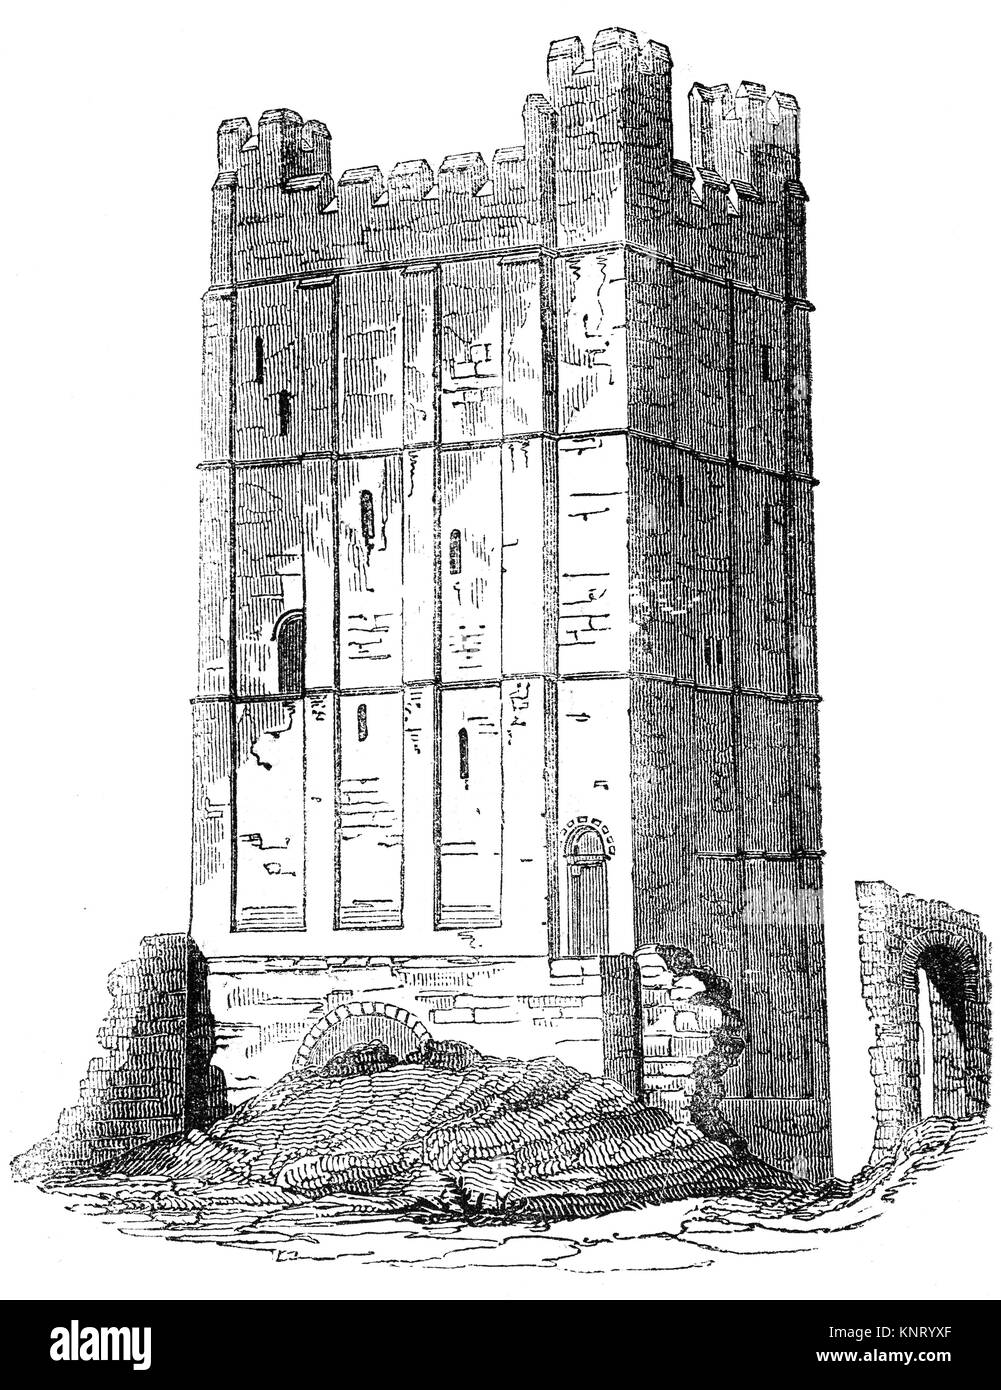 The keep of Richmond Castle, completed in 1086, in the market town of Richmond founded in 1071 by the Breton Alan - Stock Image